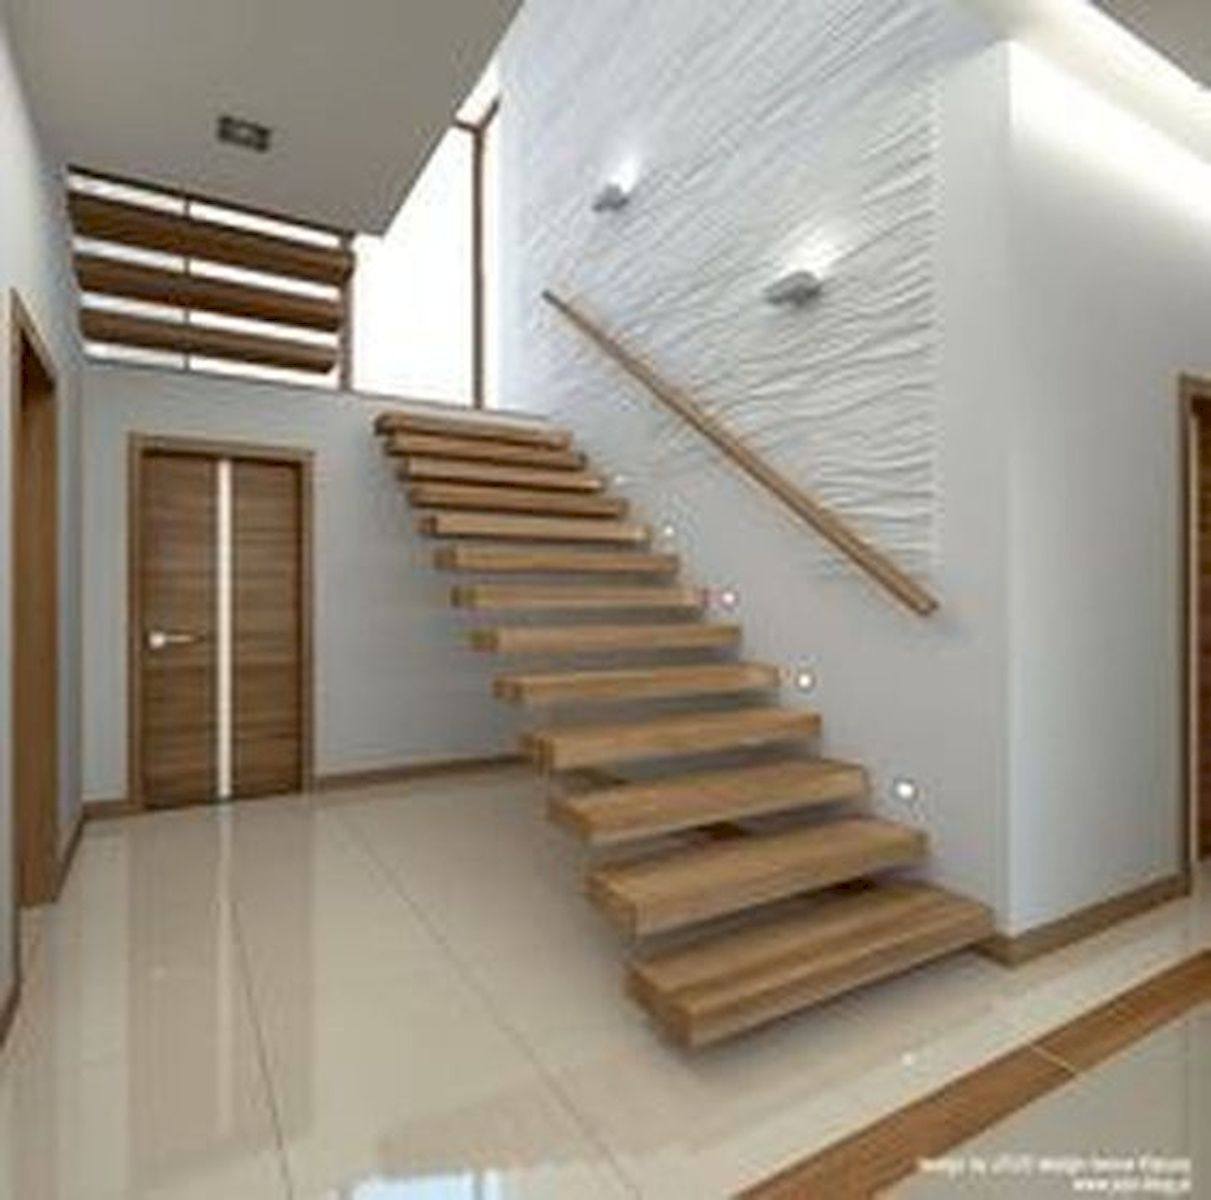 30 Awesome Wooden Stairs Design Ideas For Your Home House8055 Com | Wooden Staircase Designs For Homes | Beautiful | Royal Wooden Stair | Residential | Interior | Iron